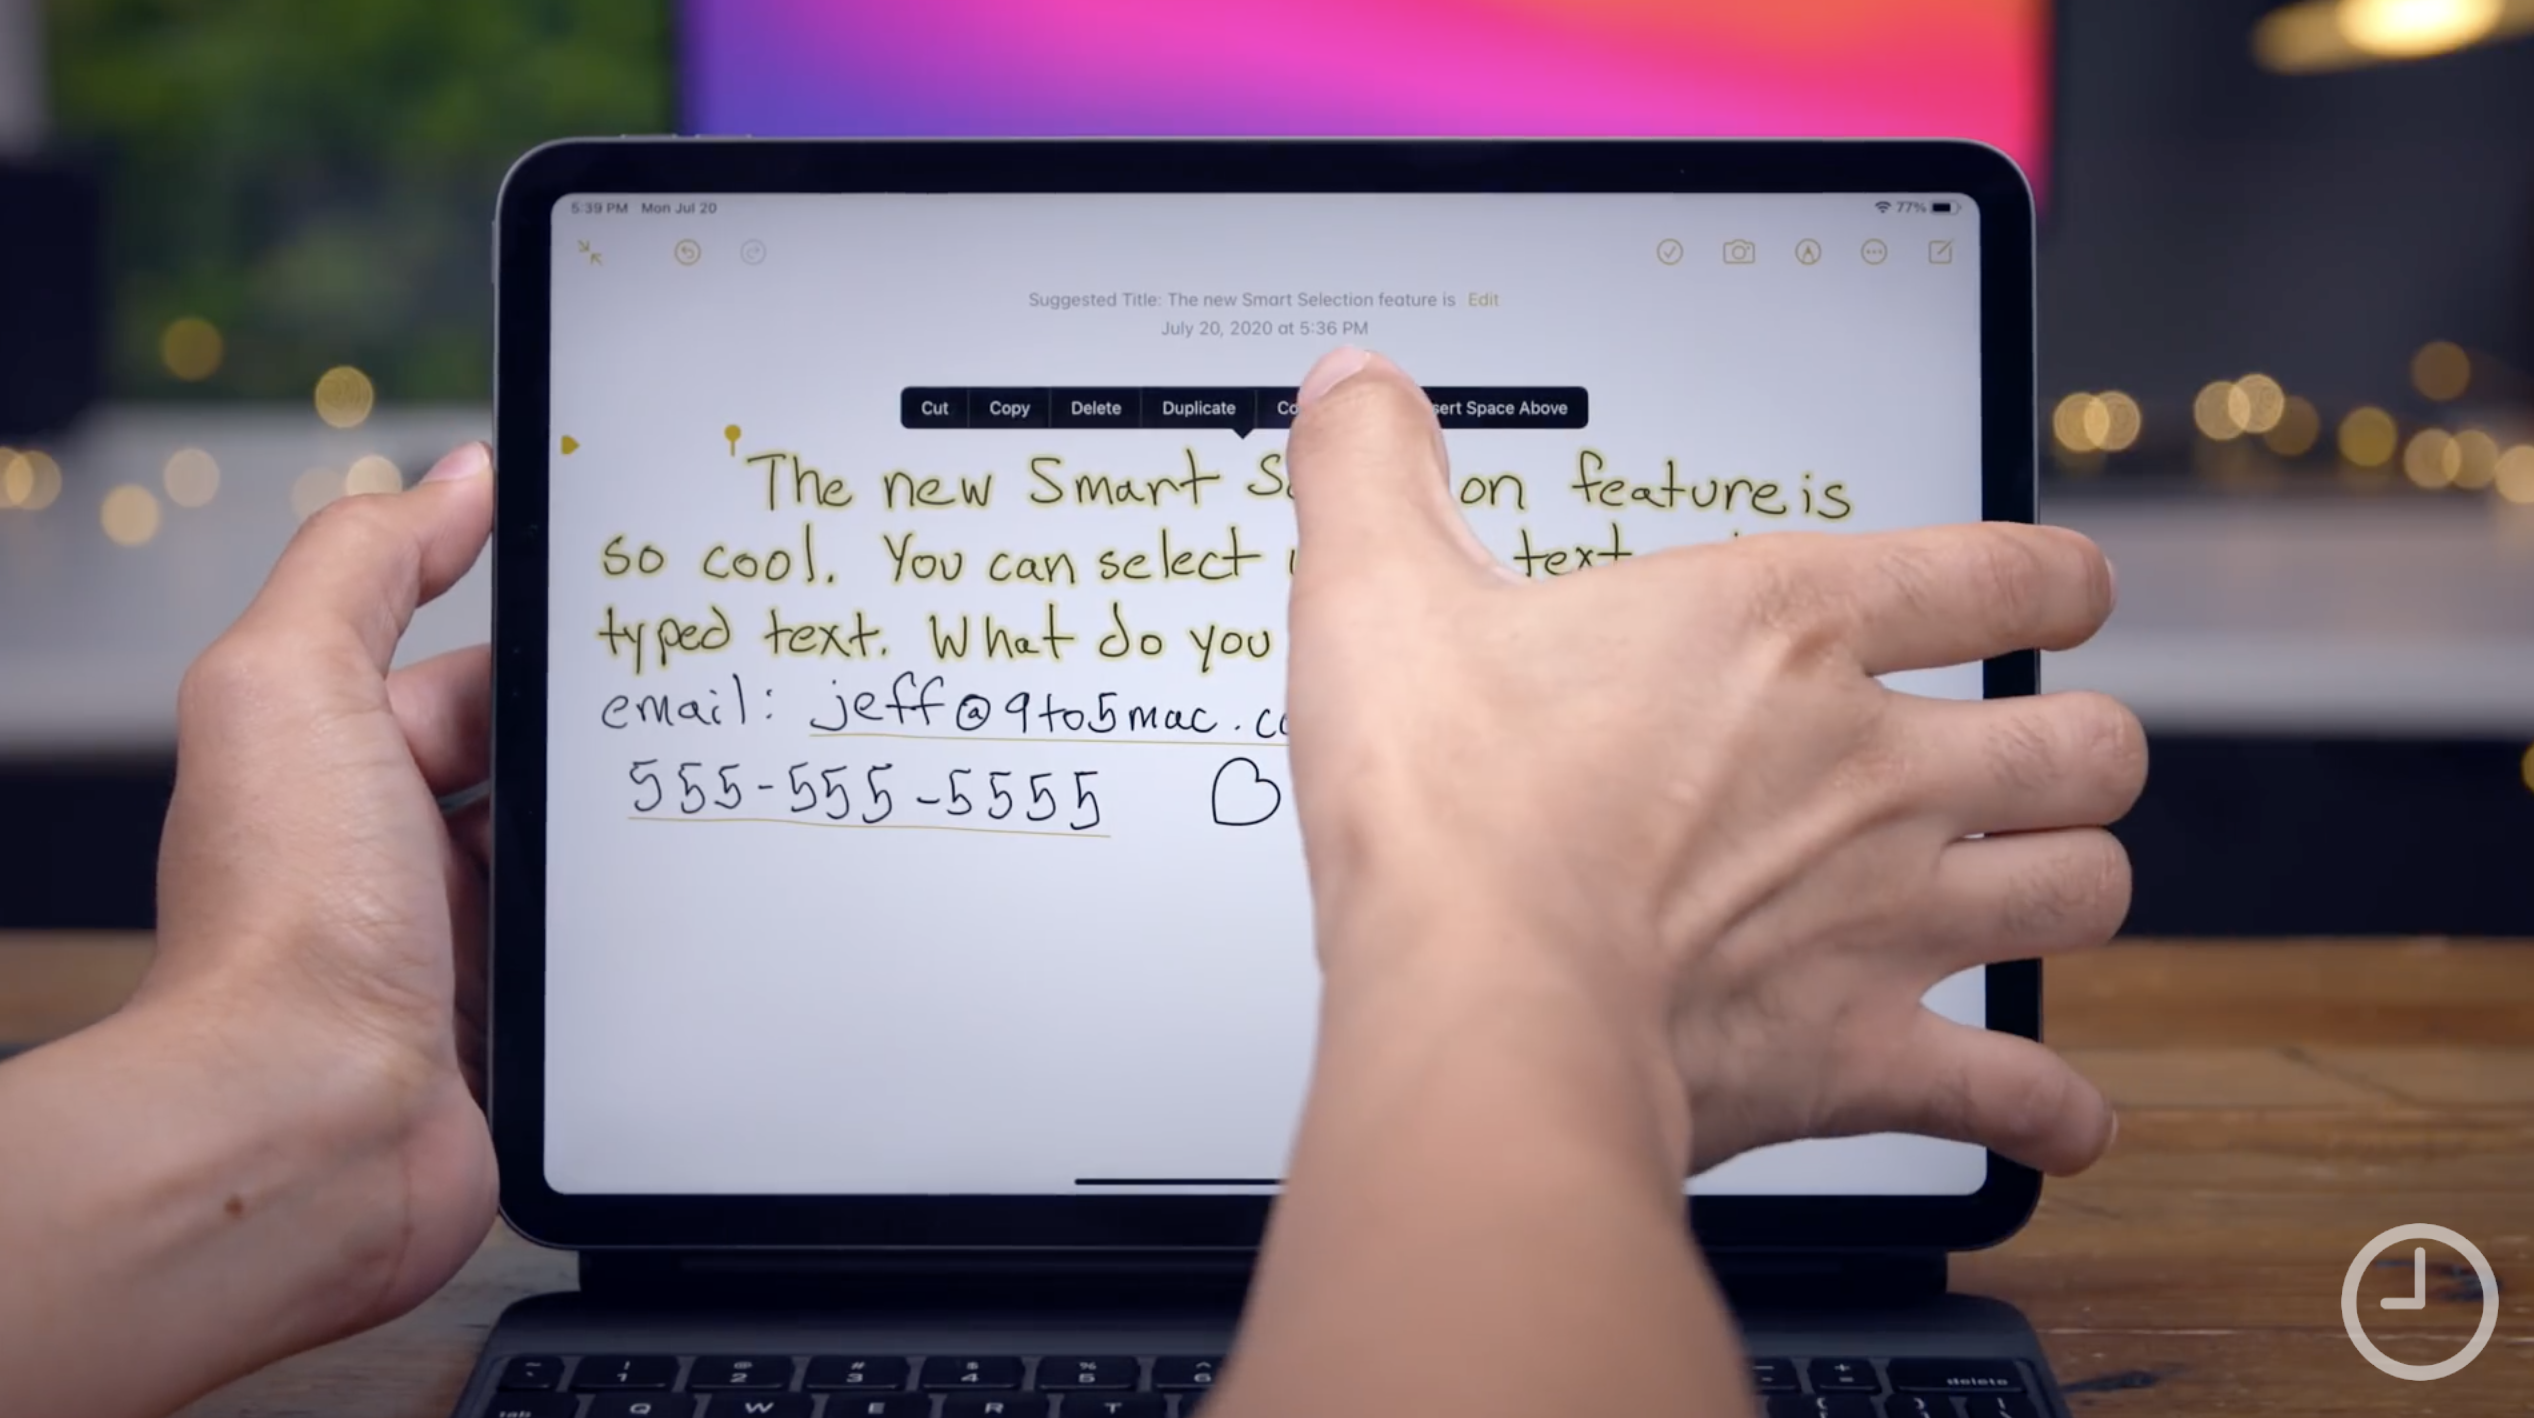 Apple releases iPadOS 14 for iPad handwriting detection